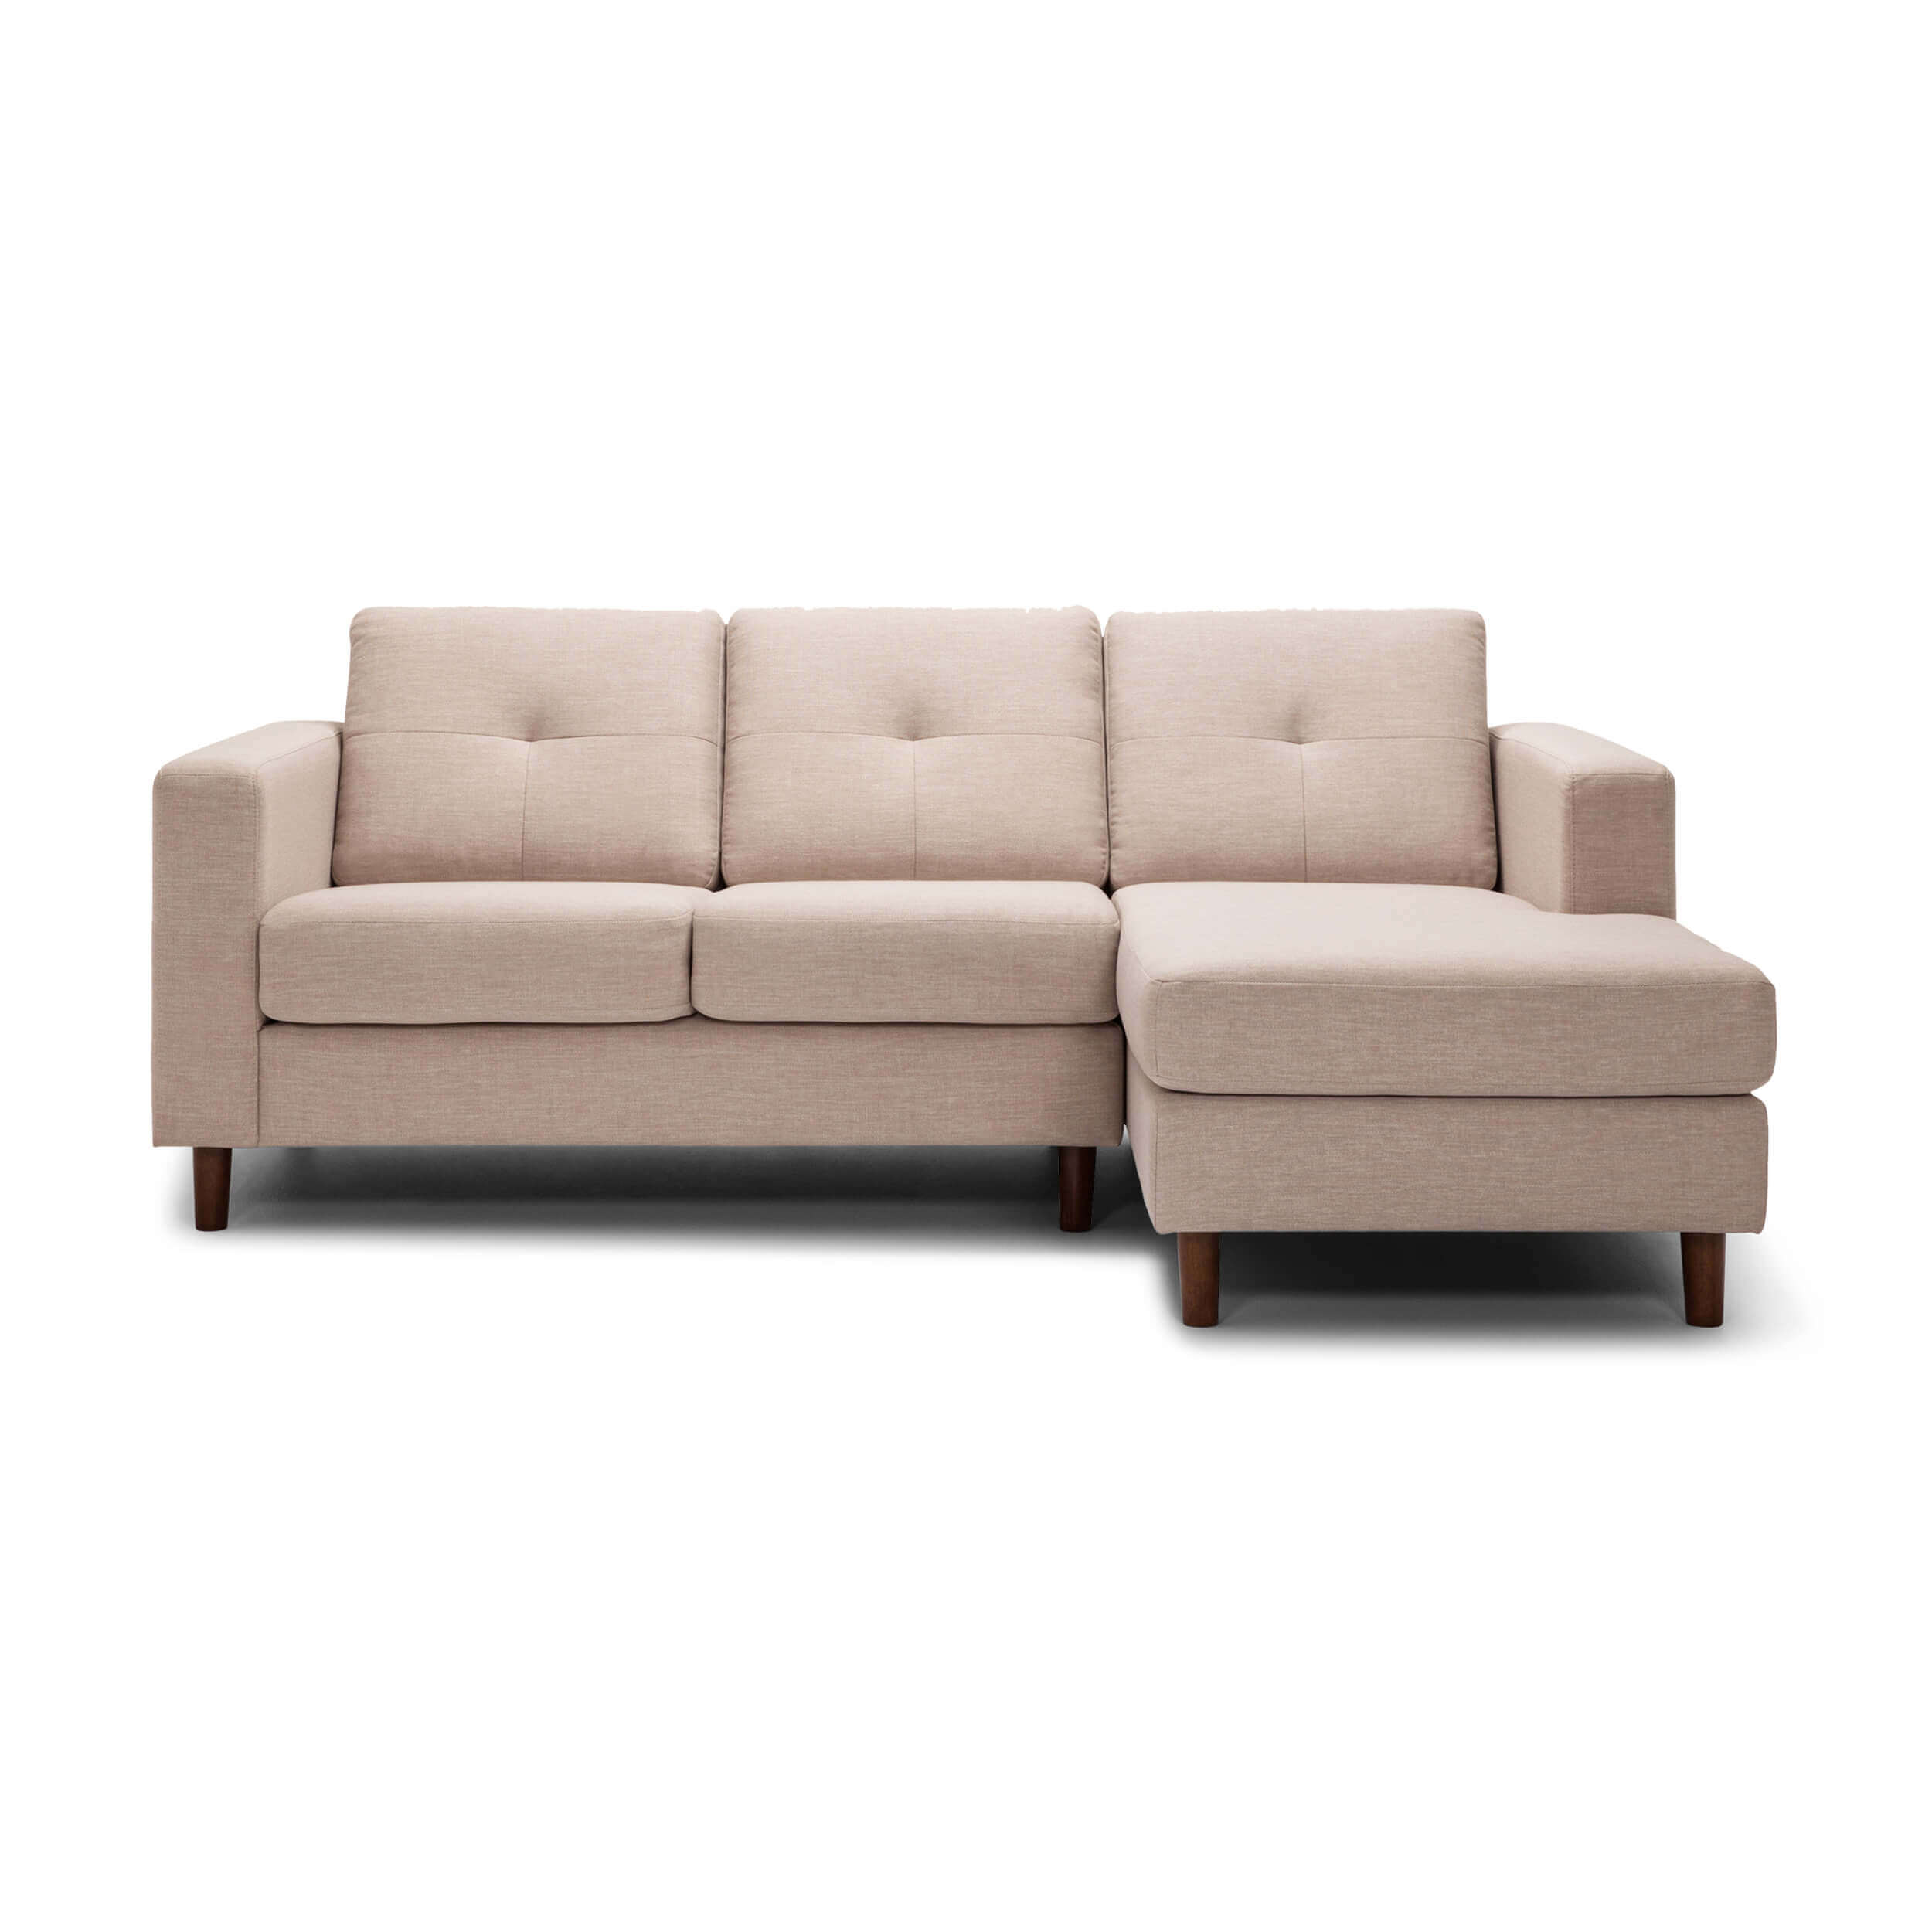 Solo 2 Piece Sectional Sofa With Chaise Fabric